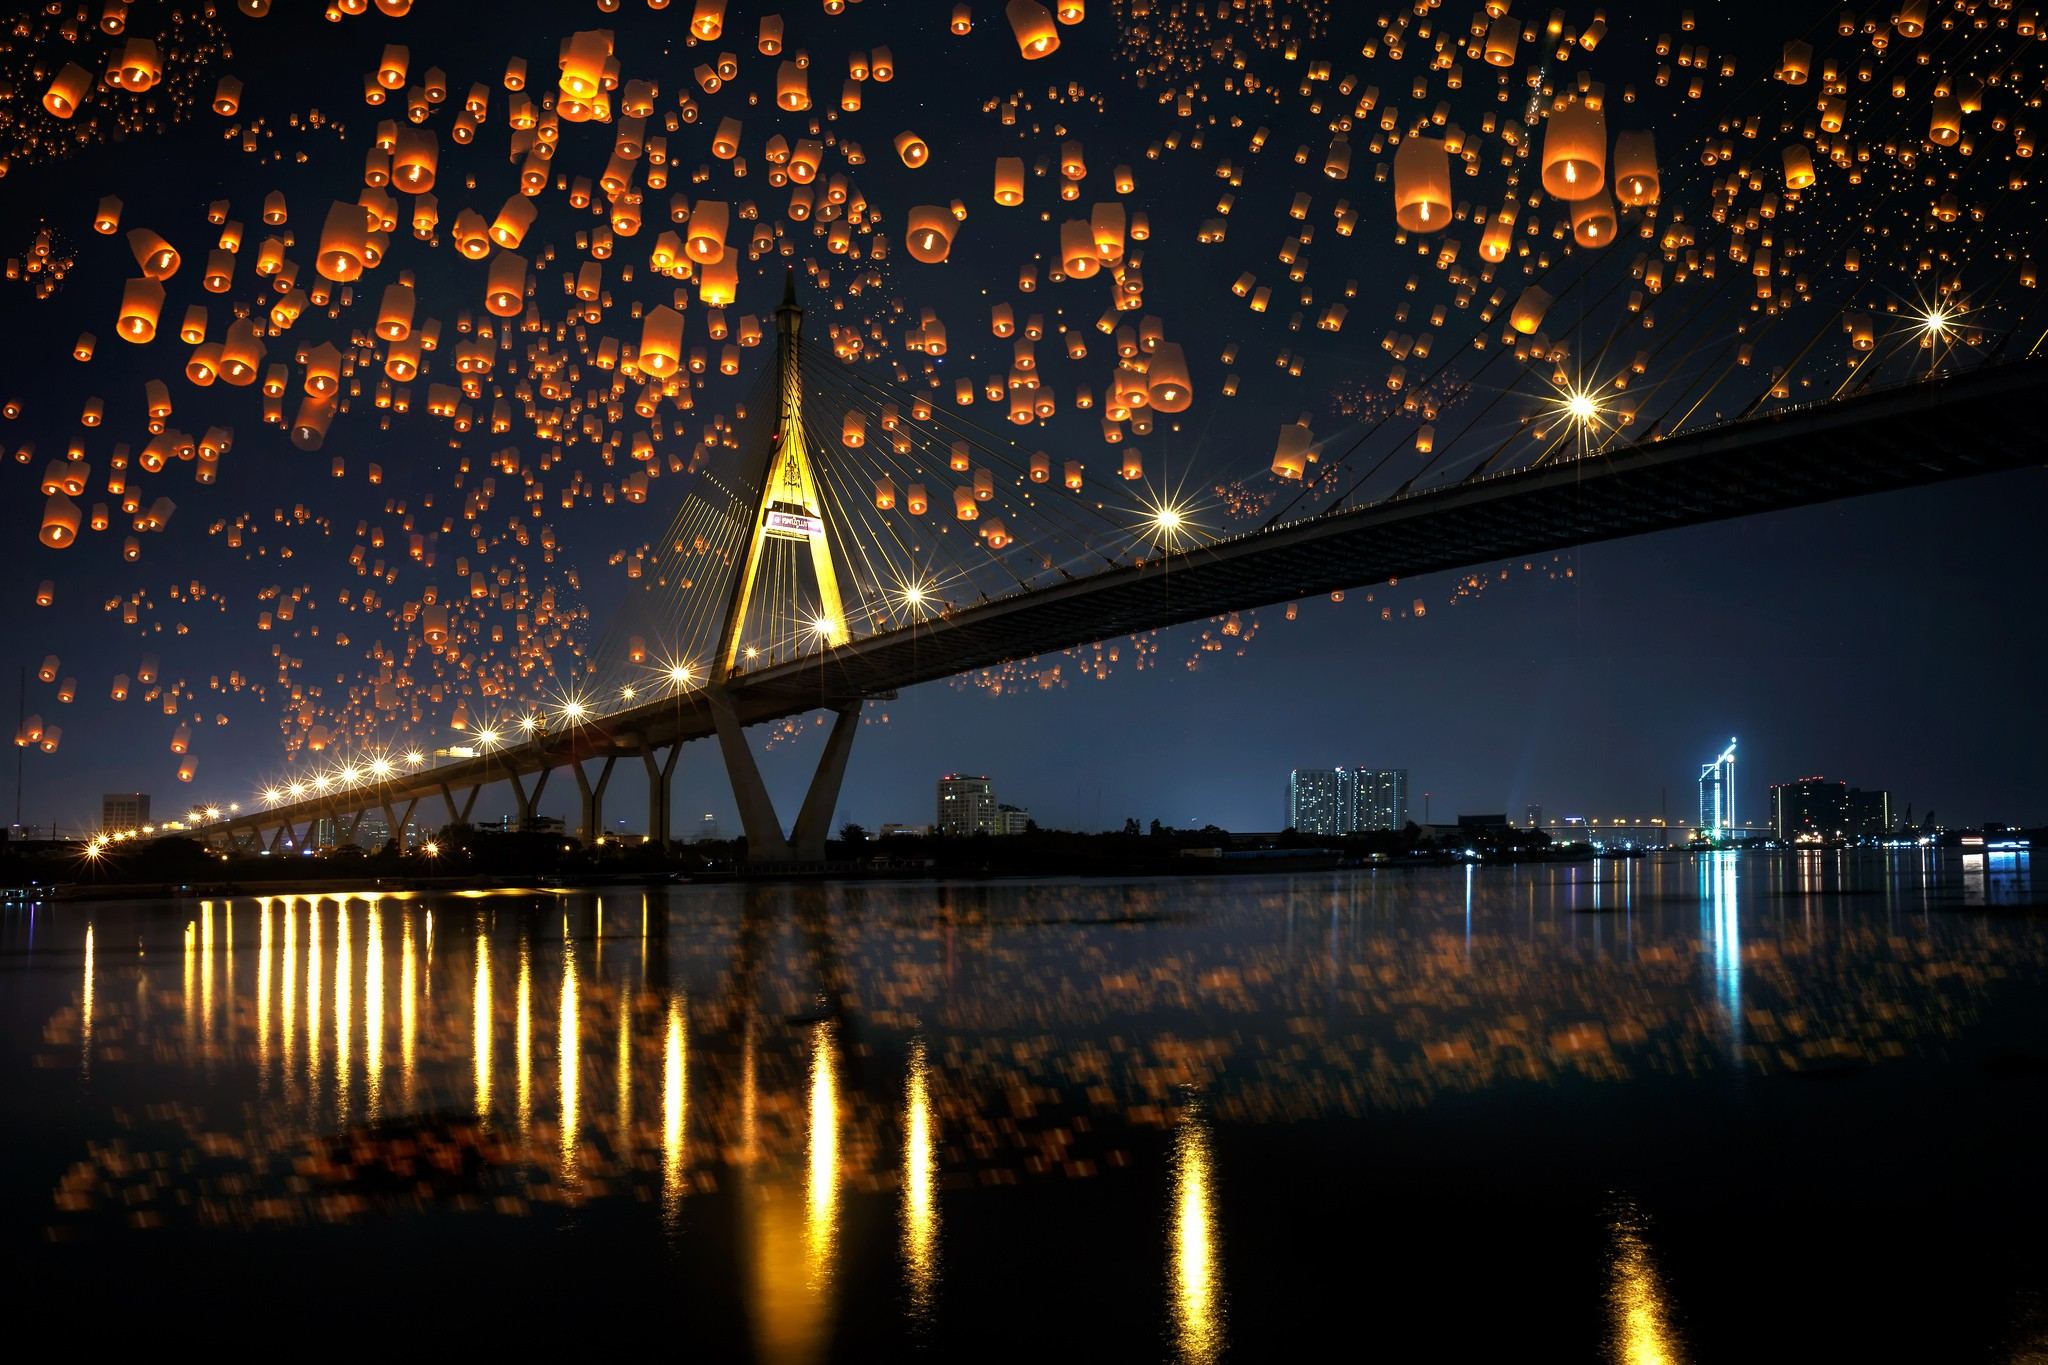 Sky Lanterns Wallpaper Iphone Landscape Bridge Night Sky Lanterns Reflection